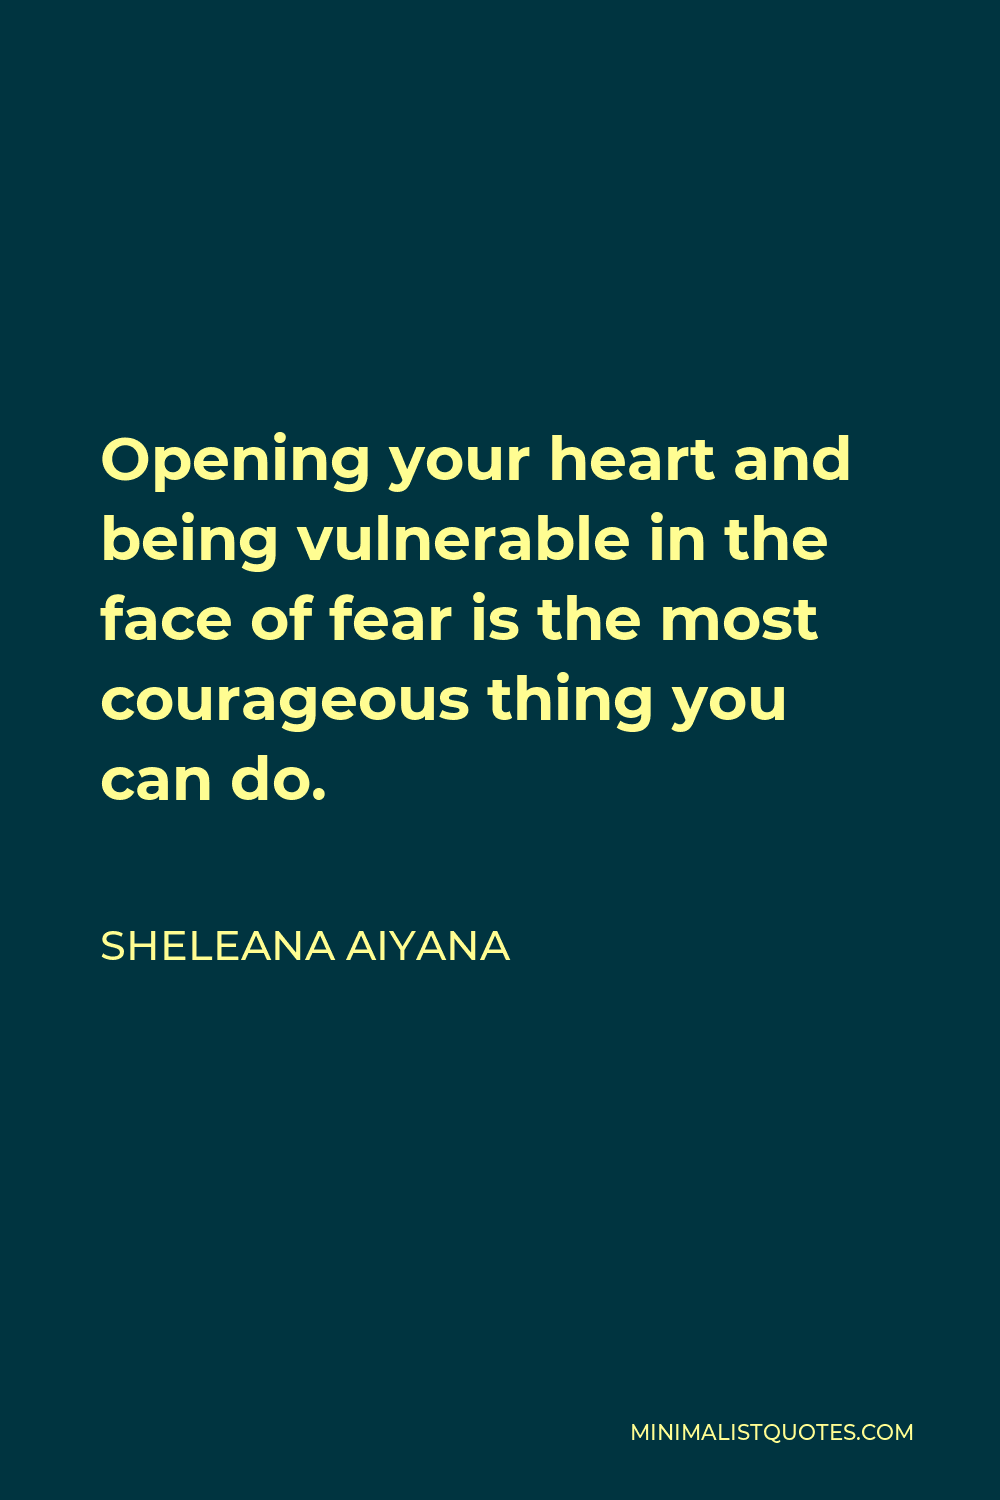 Sheleana Aiyana Quote - Opening your heart and being vulnerable in the face of fear is the most courageous thing you can do.